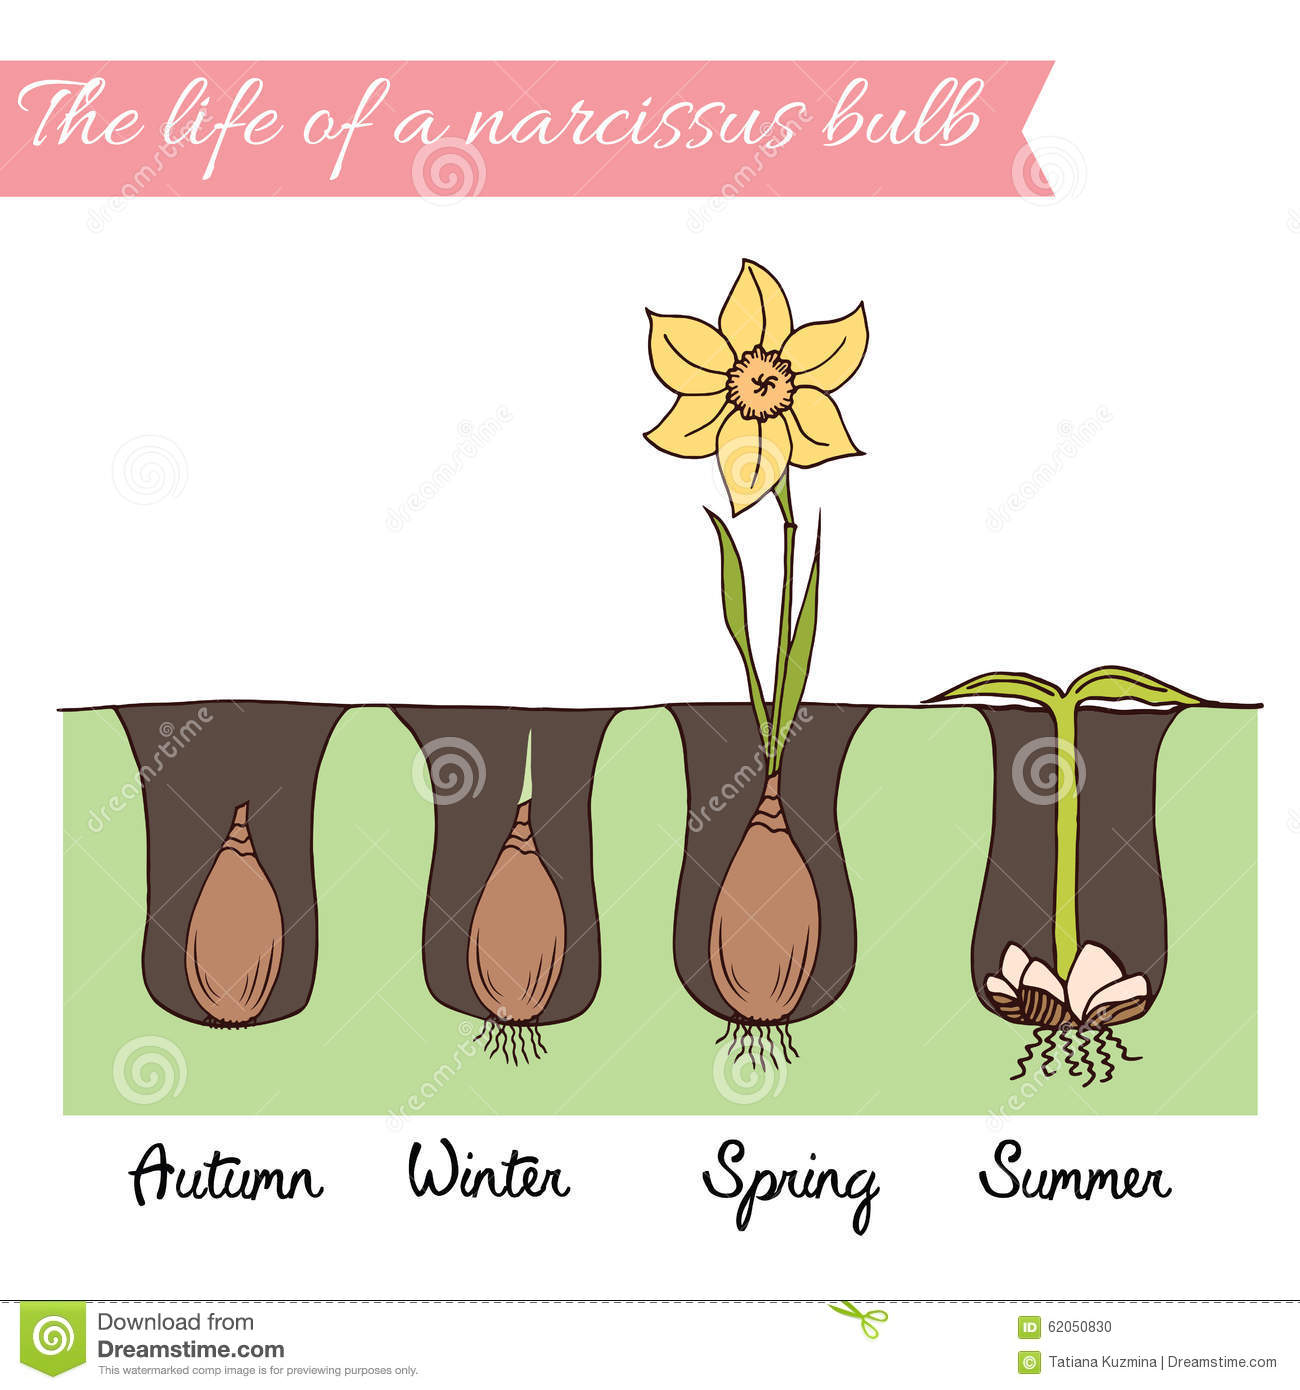 When how to plant daffodil bulbs - Royalty Free Illustration Download How To Plant The Daffodils